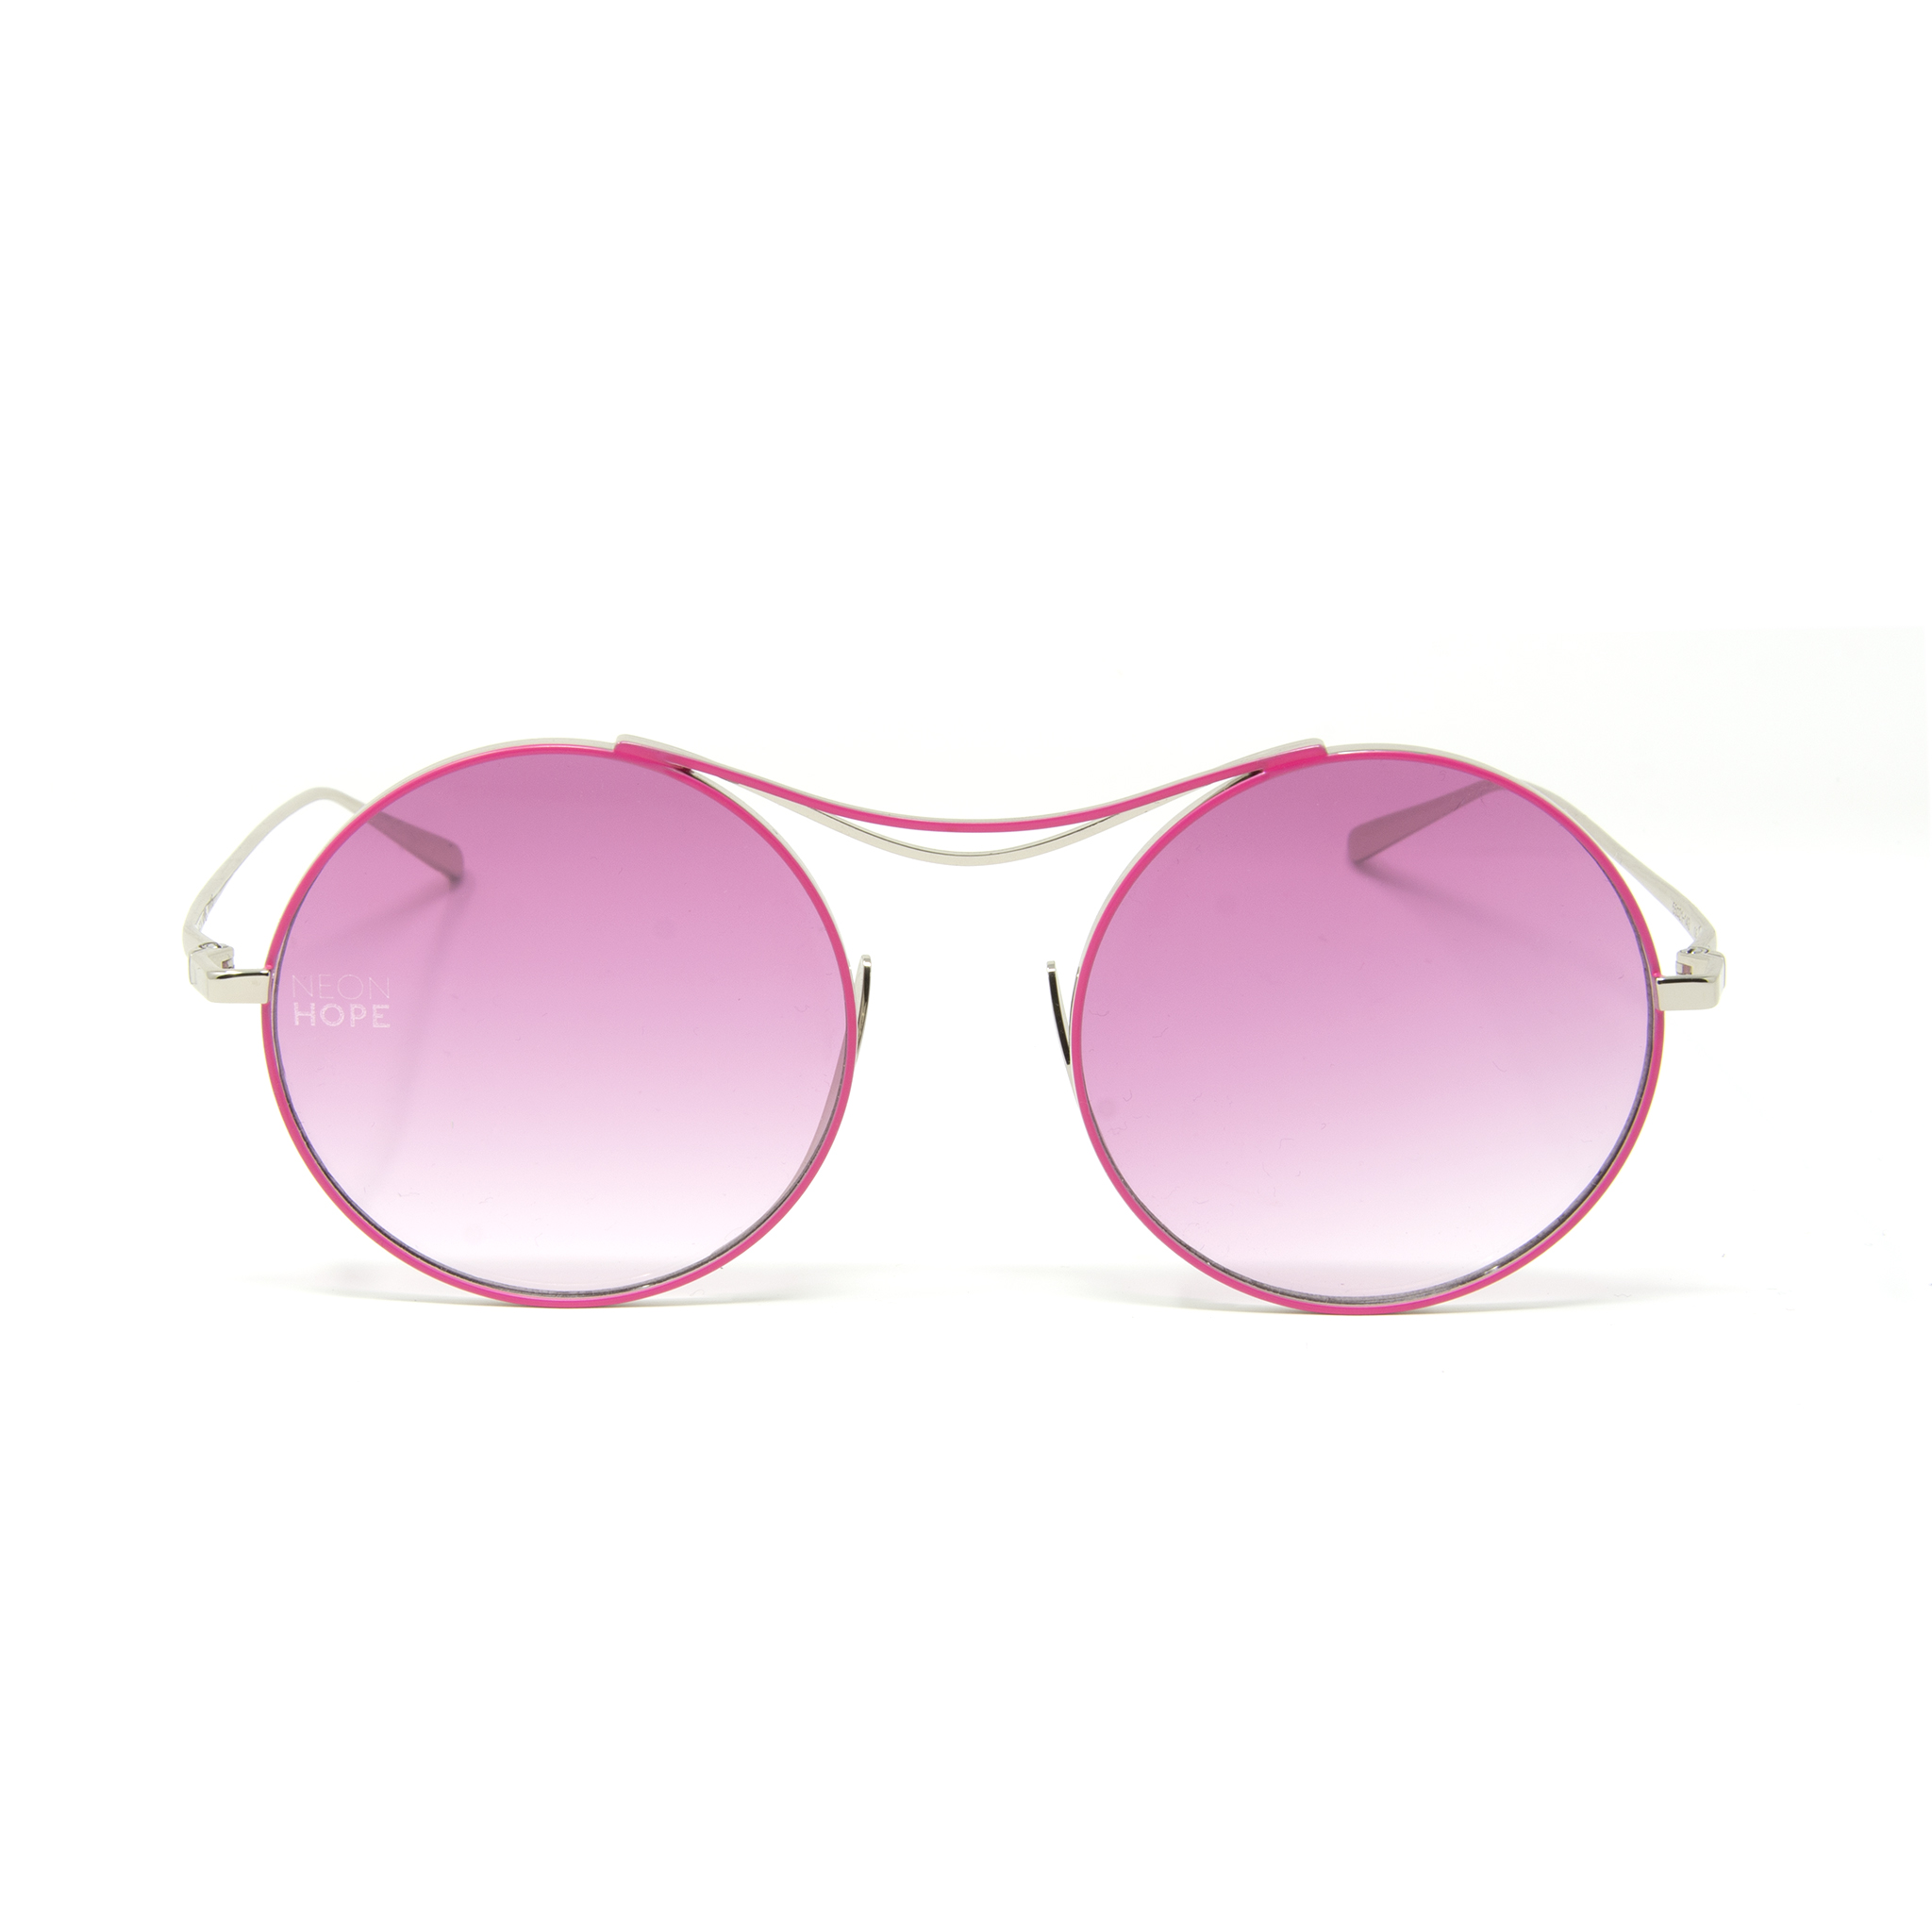 Sulis - Hot Pink / Silver (limited edition) by Neon Hope on curated-crowd.com